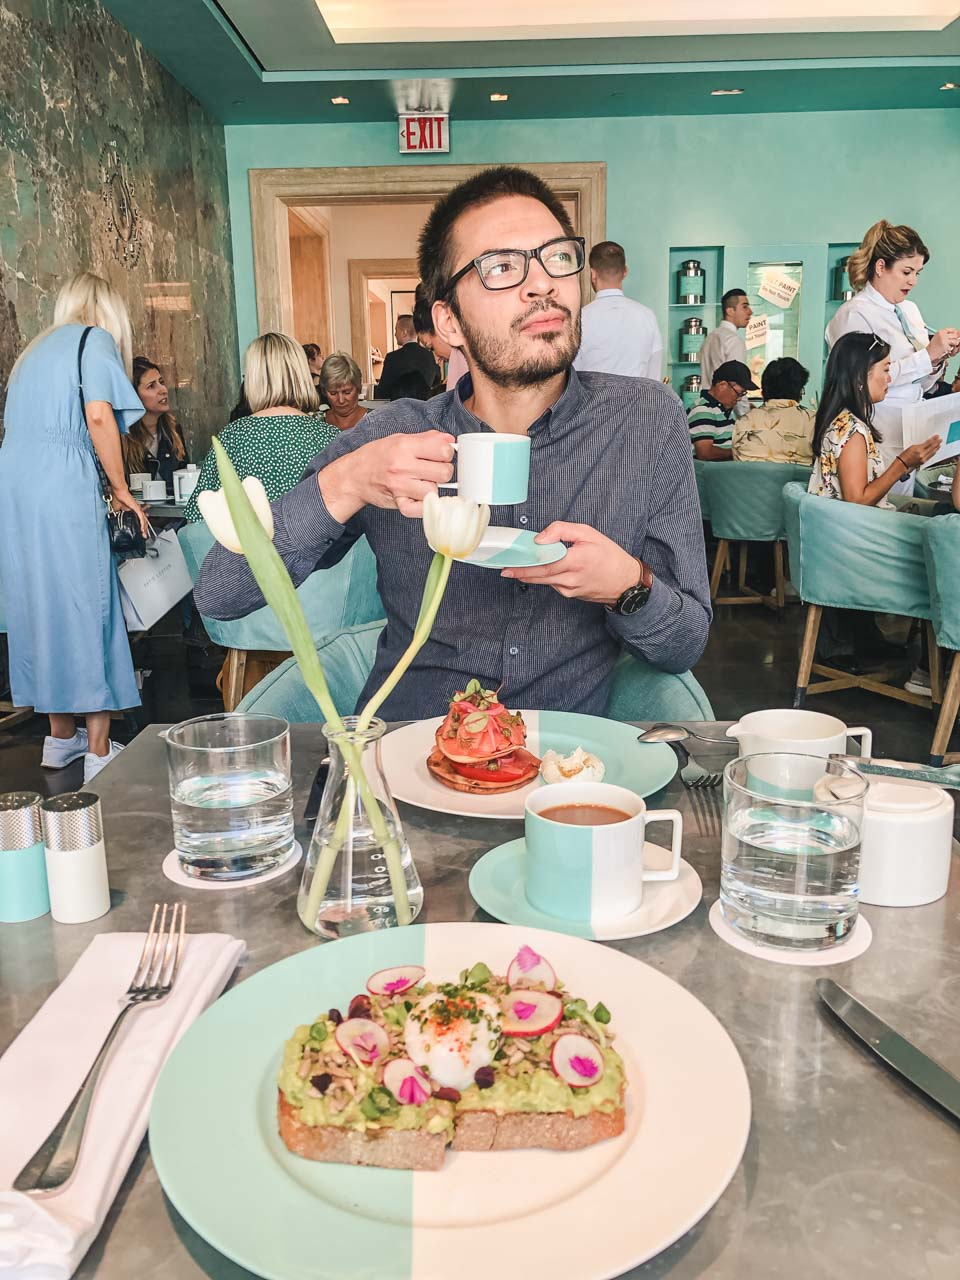 A man drinking coffee and eating breakfast at The Blue Box Cafe in New York City